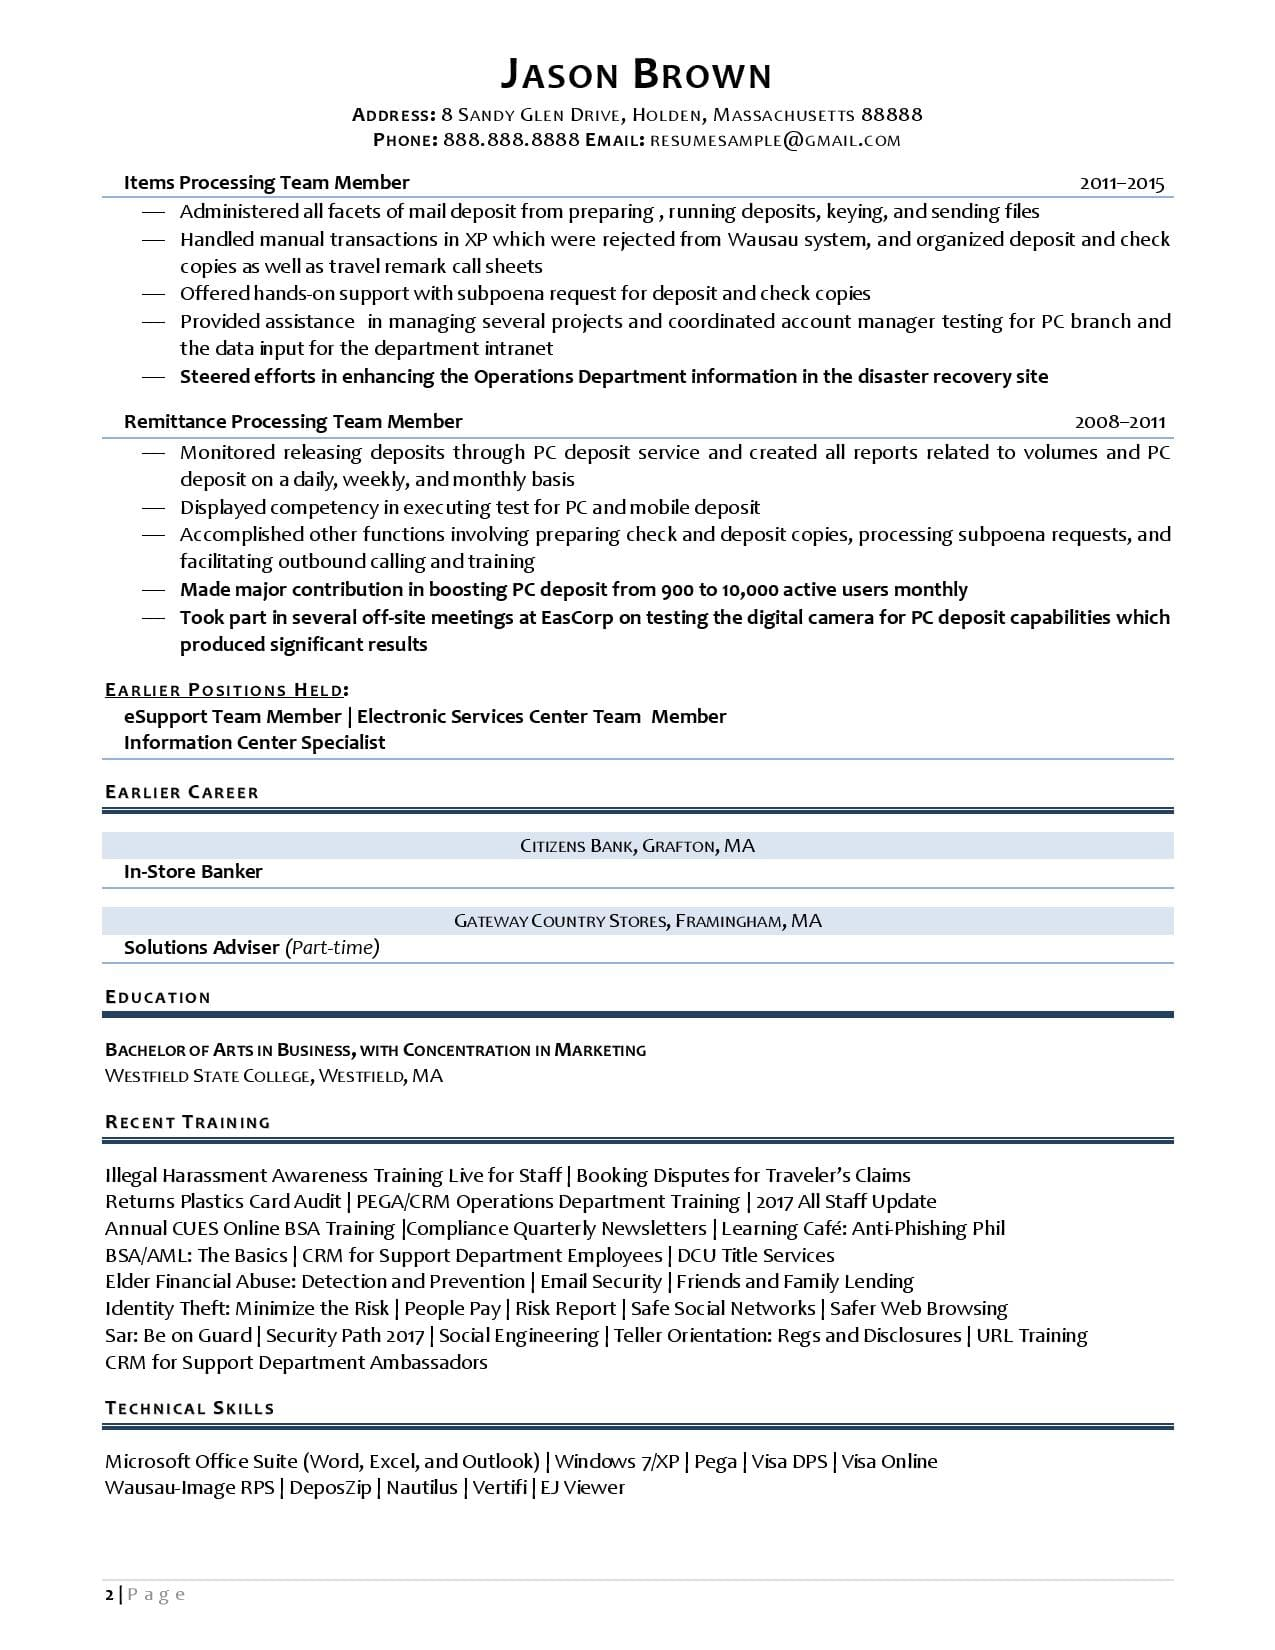 A teller resume sample with key skills banking resume page 2